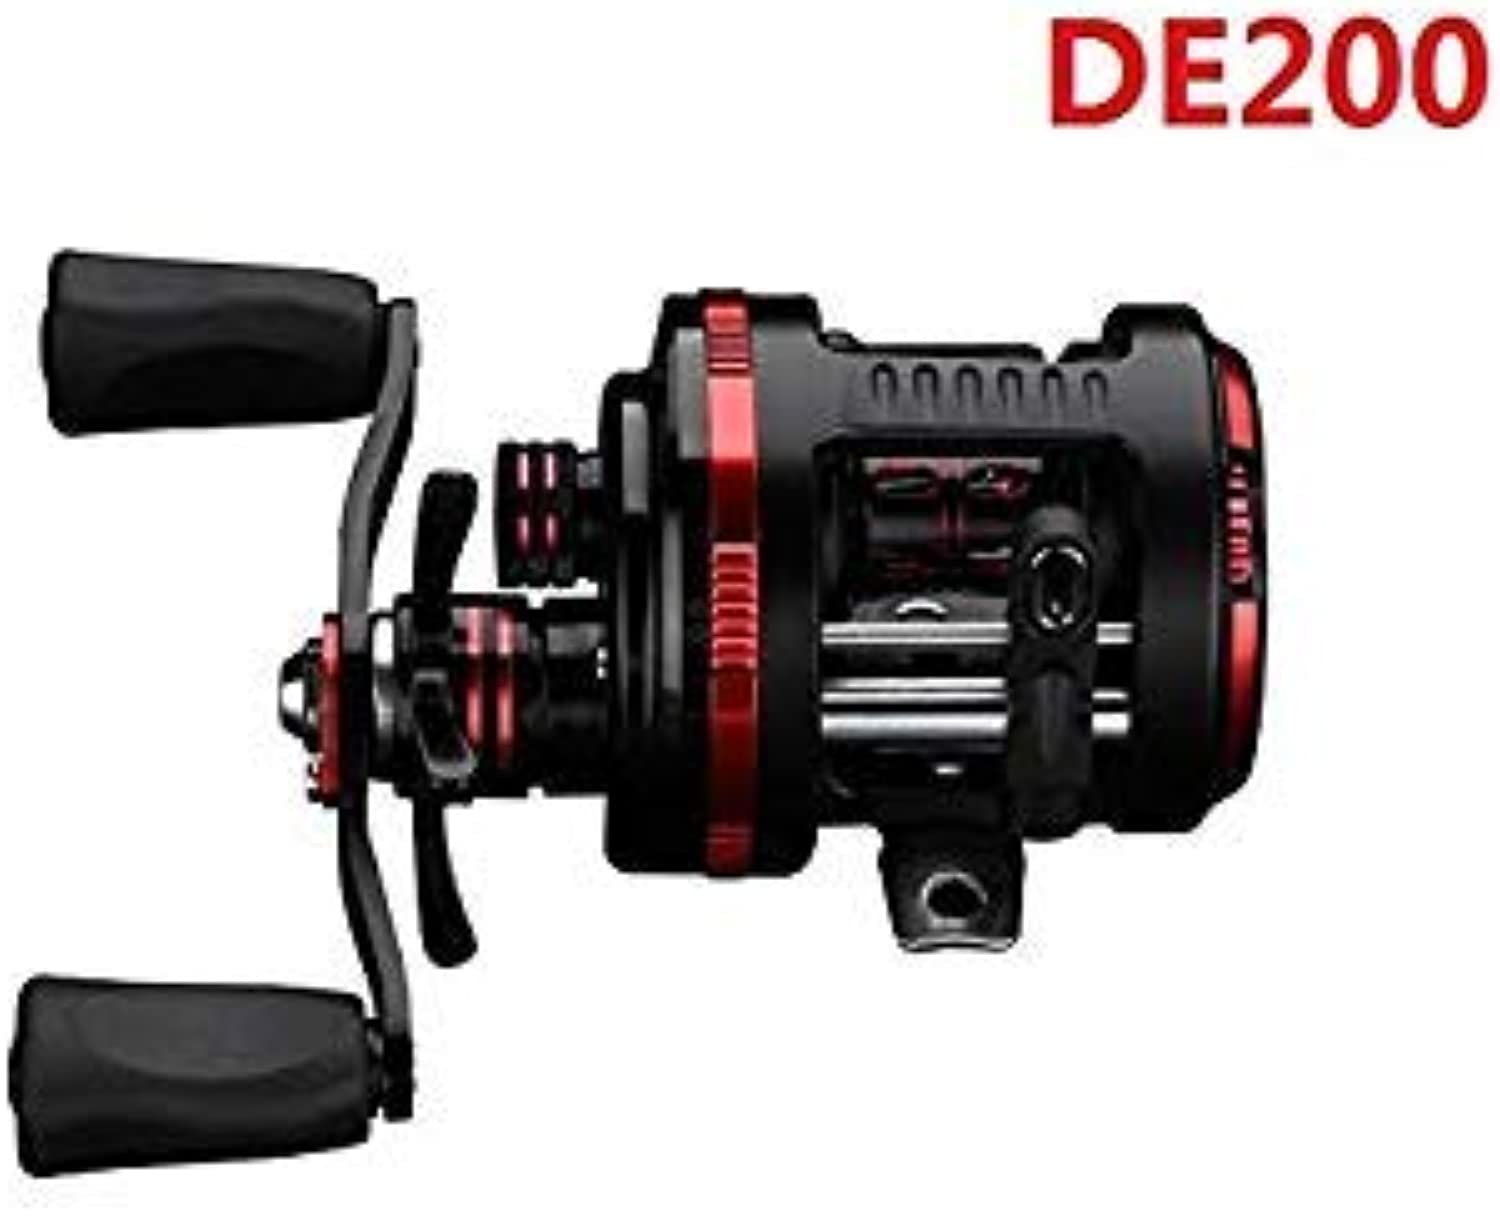 GEOPONICS LumiParty DE Spinning Reel - CarbonDragGears, Stainless Steel Components color DE 200 Bearing Quantity 11 Use Mode Left